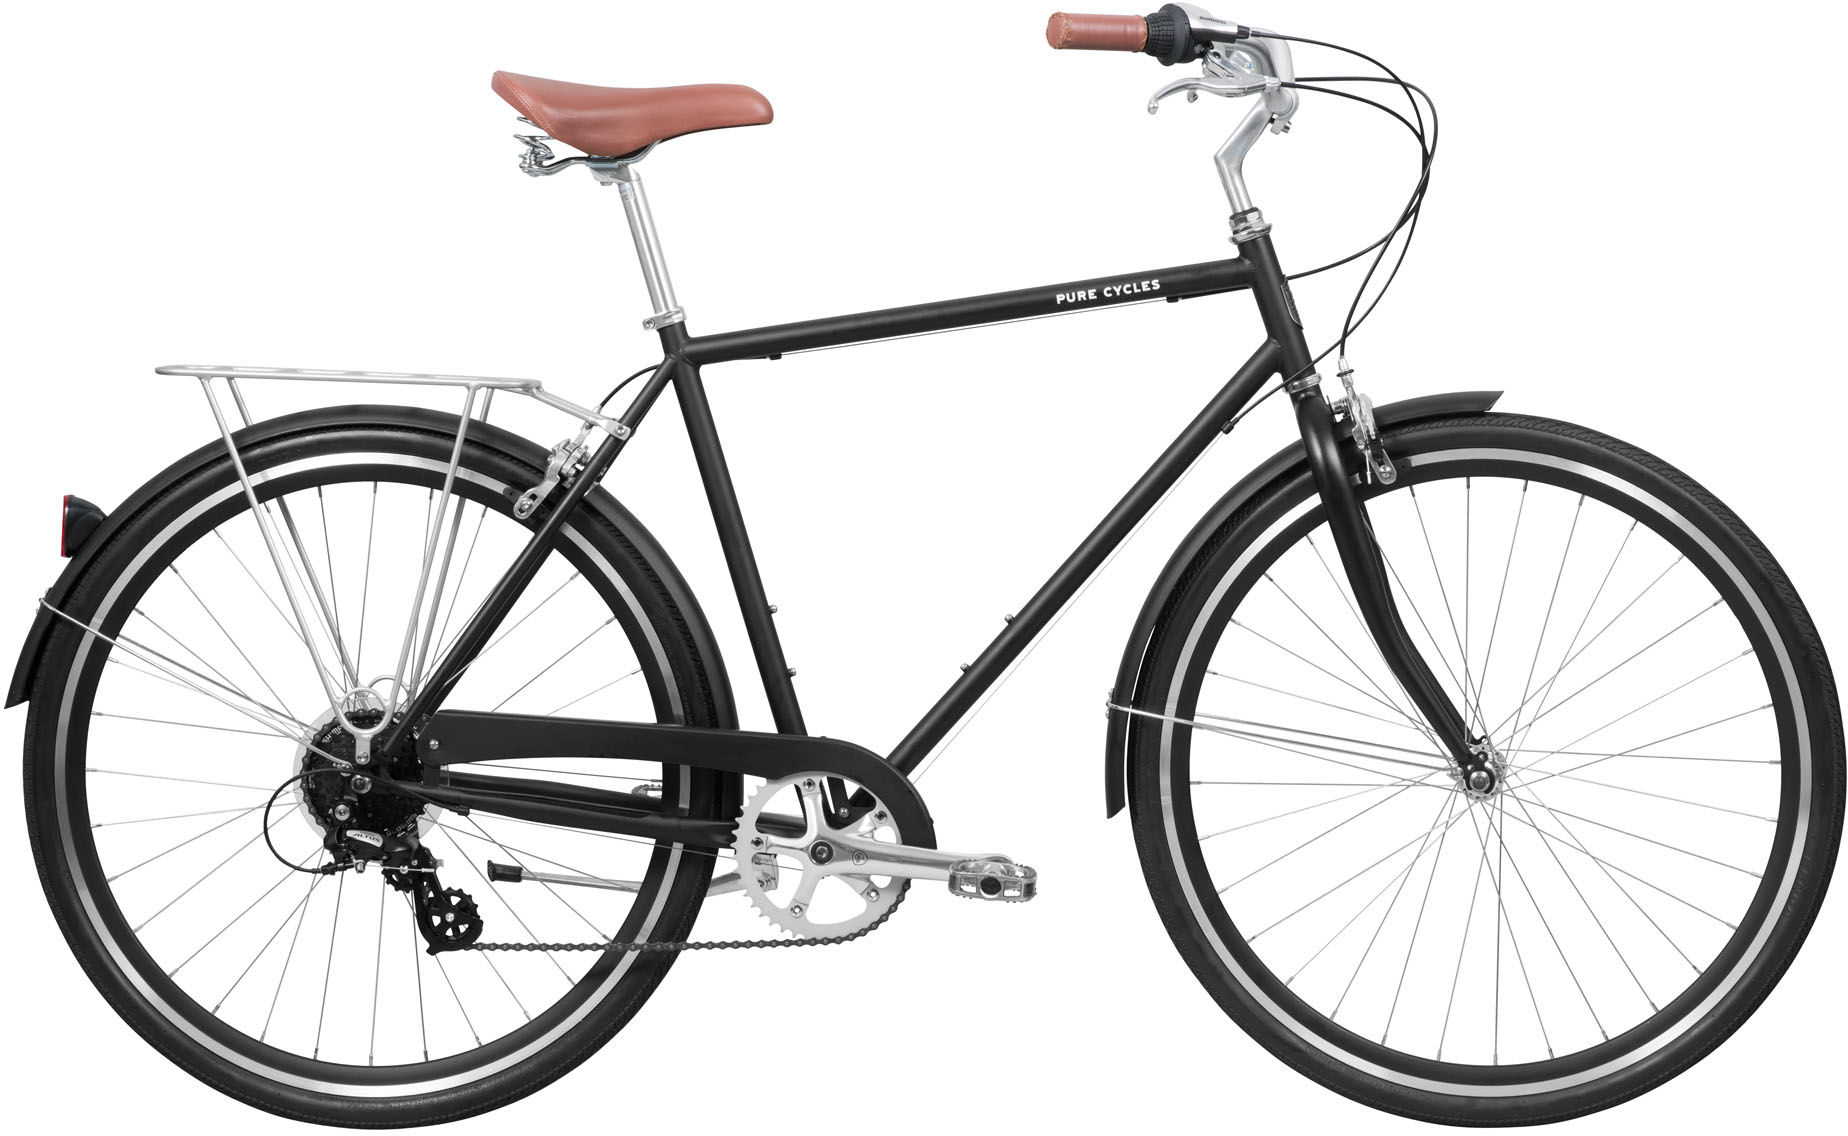 Pure Fix Cycles Bourbon 8 Speed City Classic Bike (2019) | City